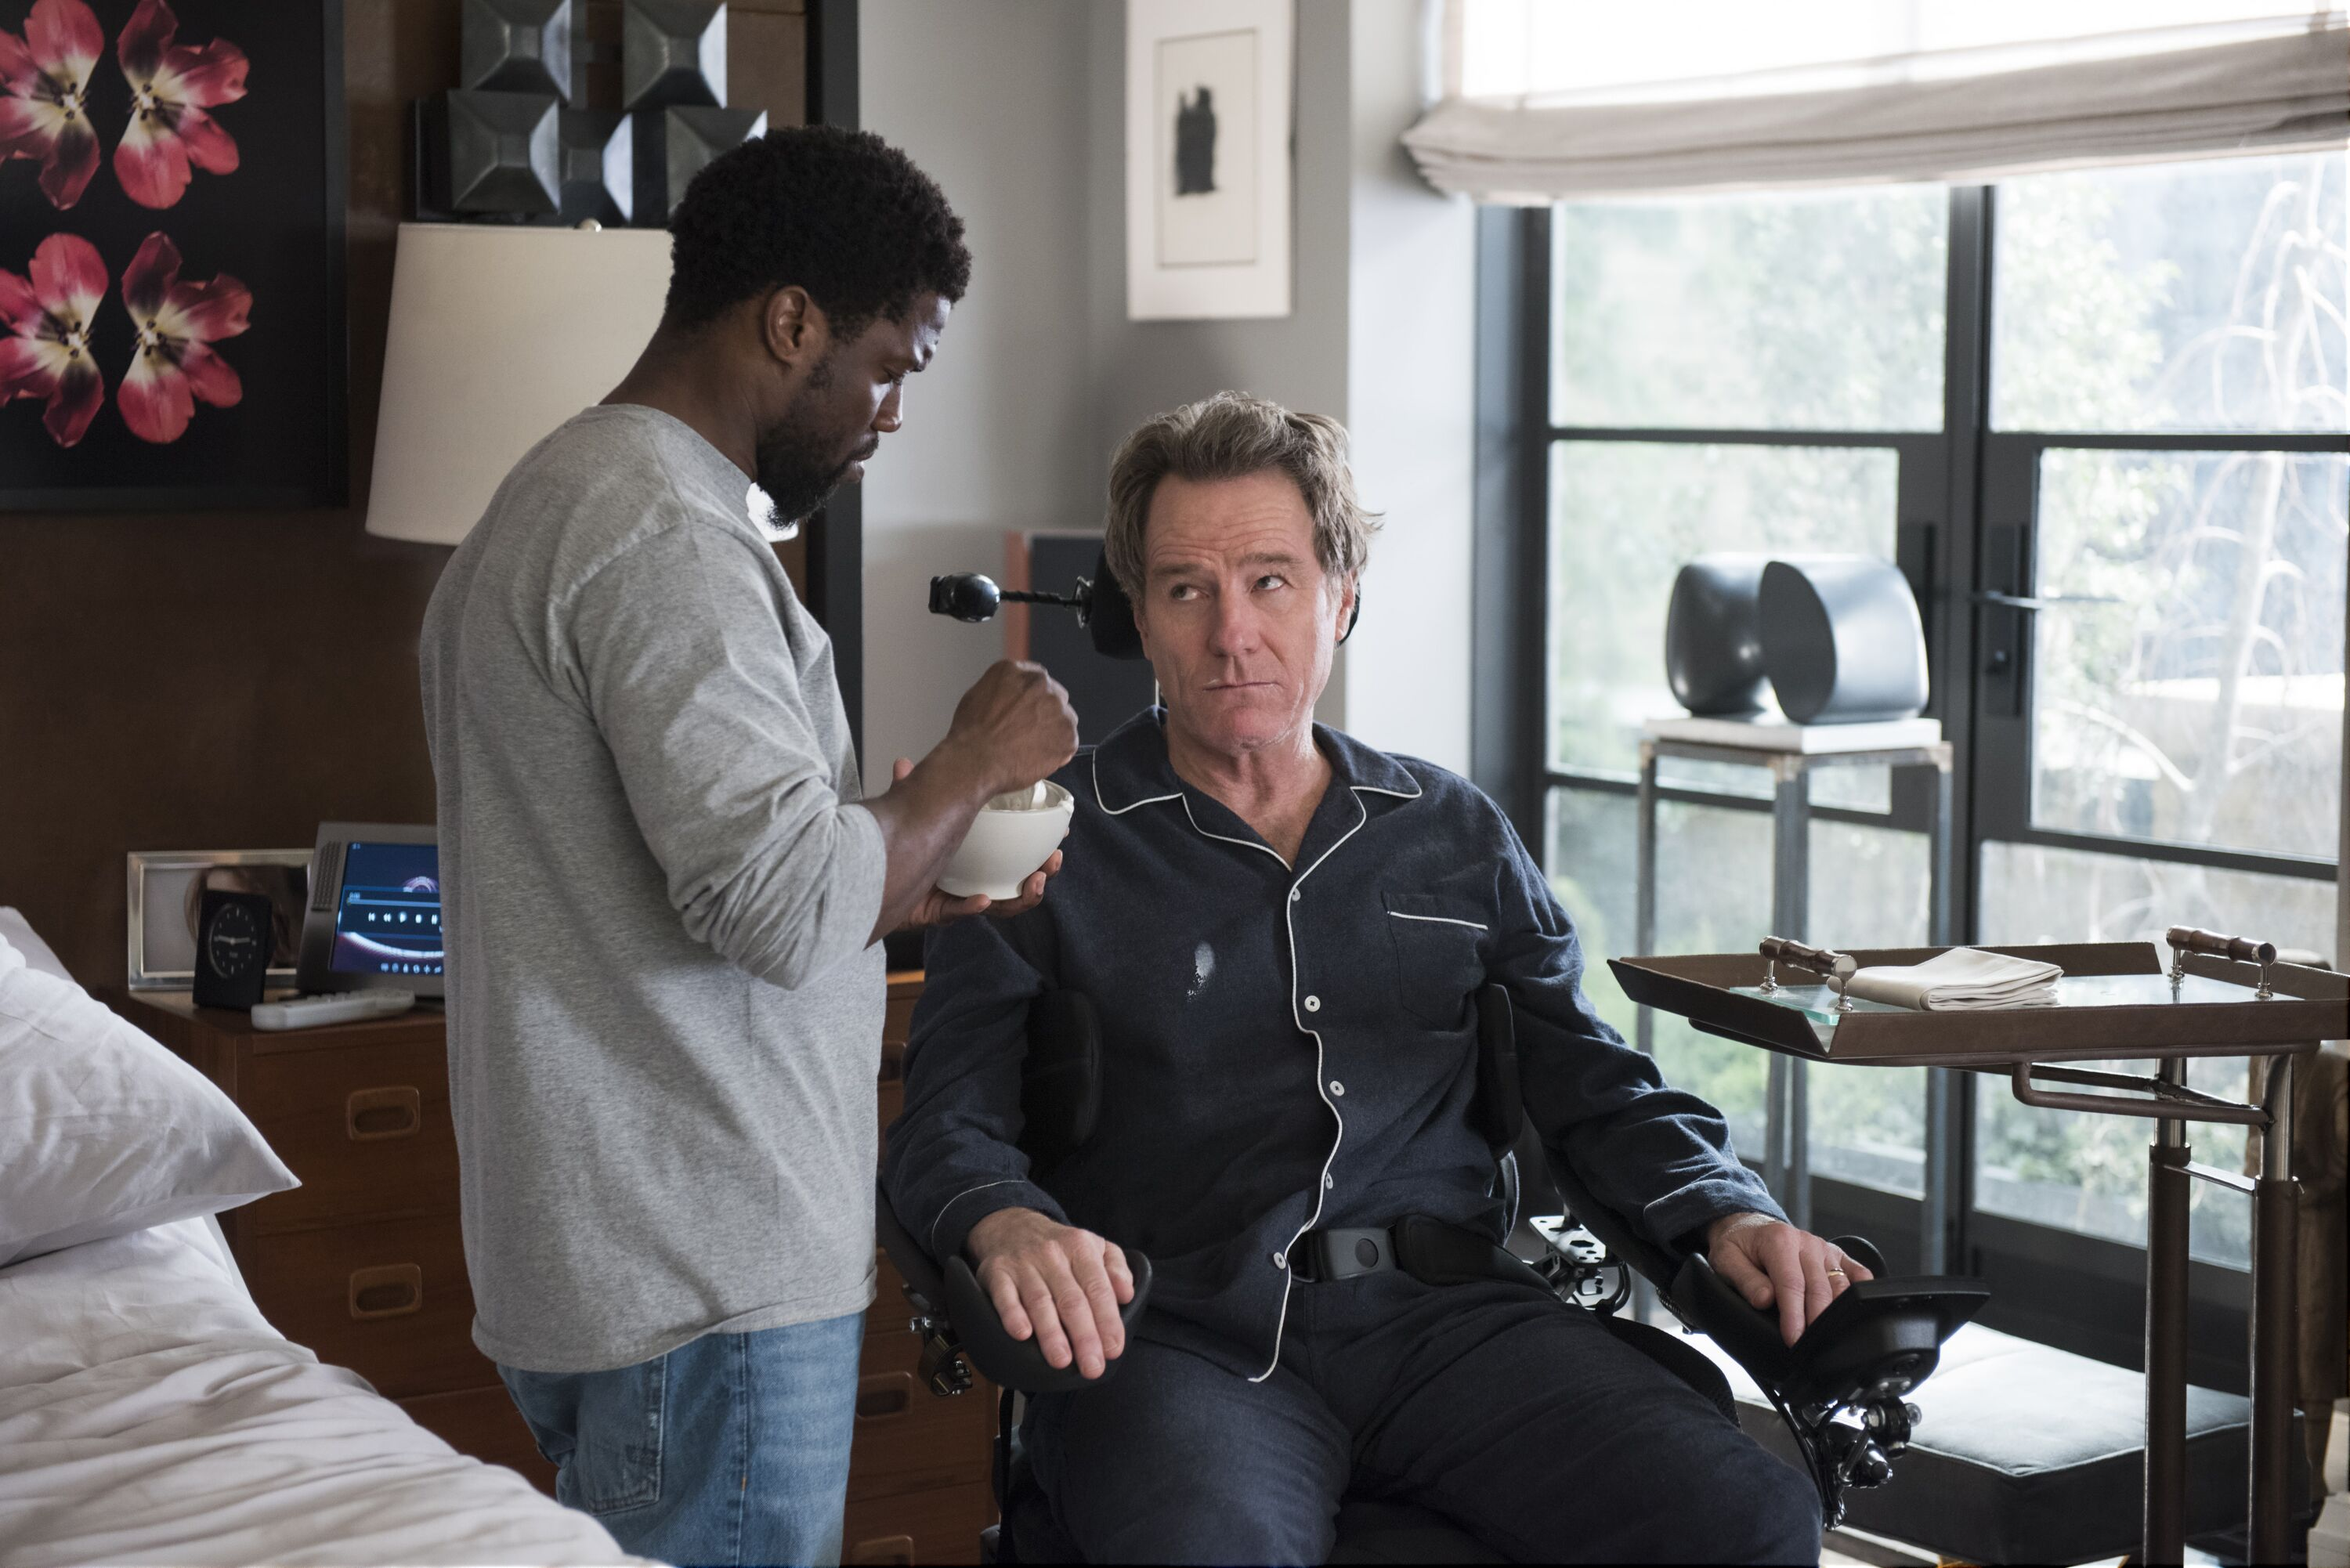 The Upside movie from the perspective of a disabled viewer